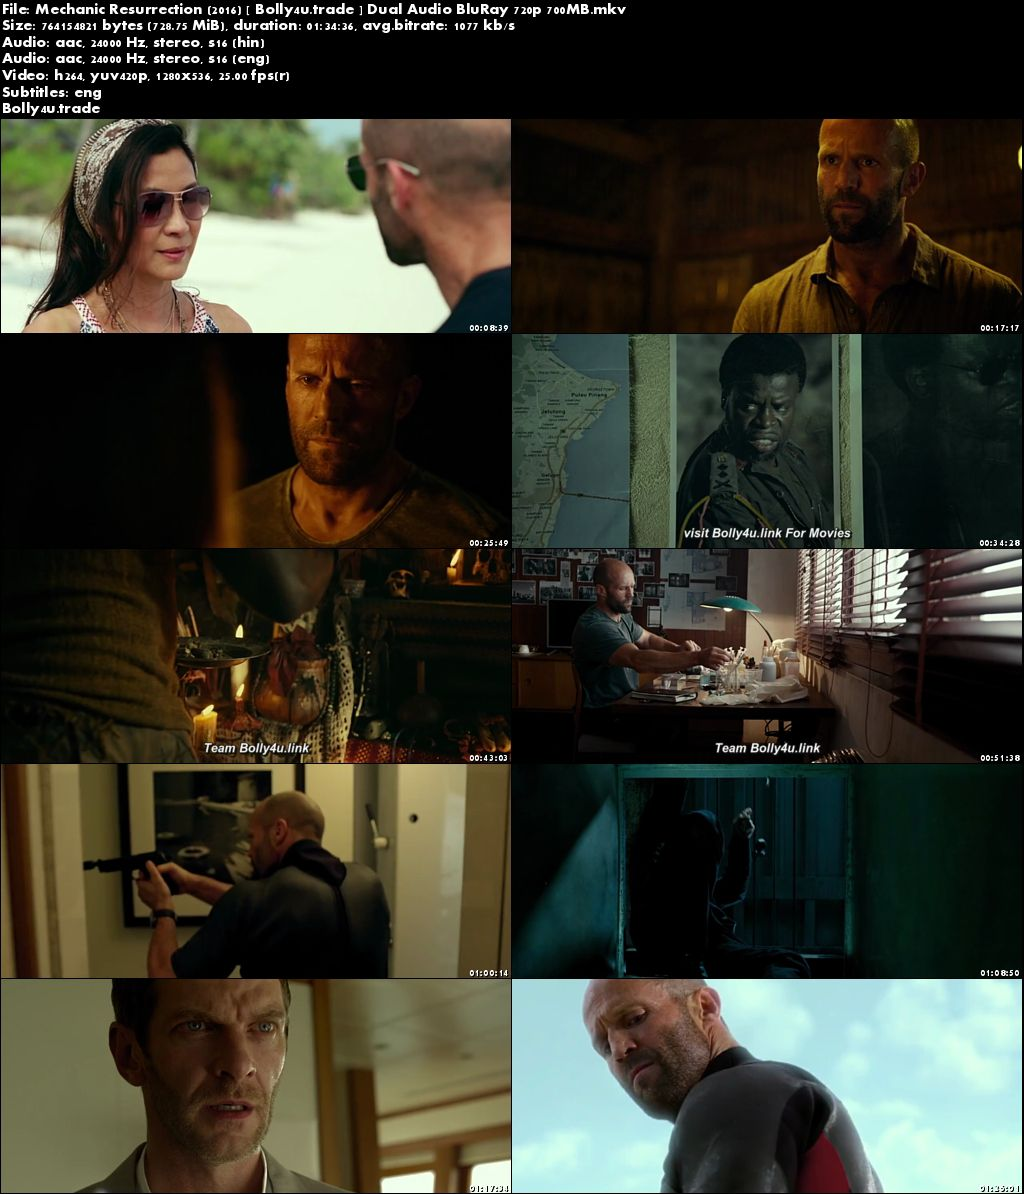 Mechanic Resurrection 2016 BluRay 700MB Hindi Dual Audio ORG 720p Download